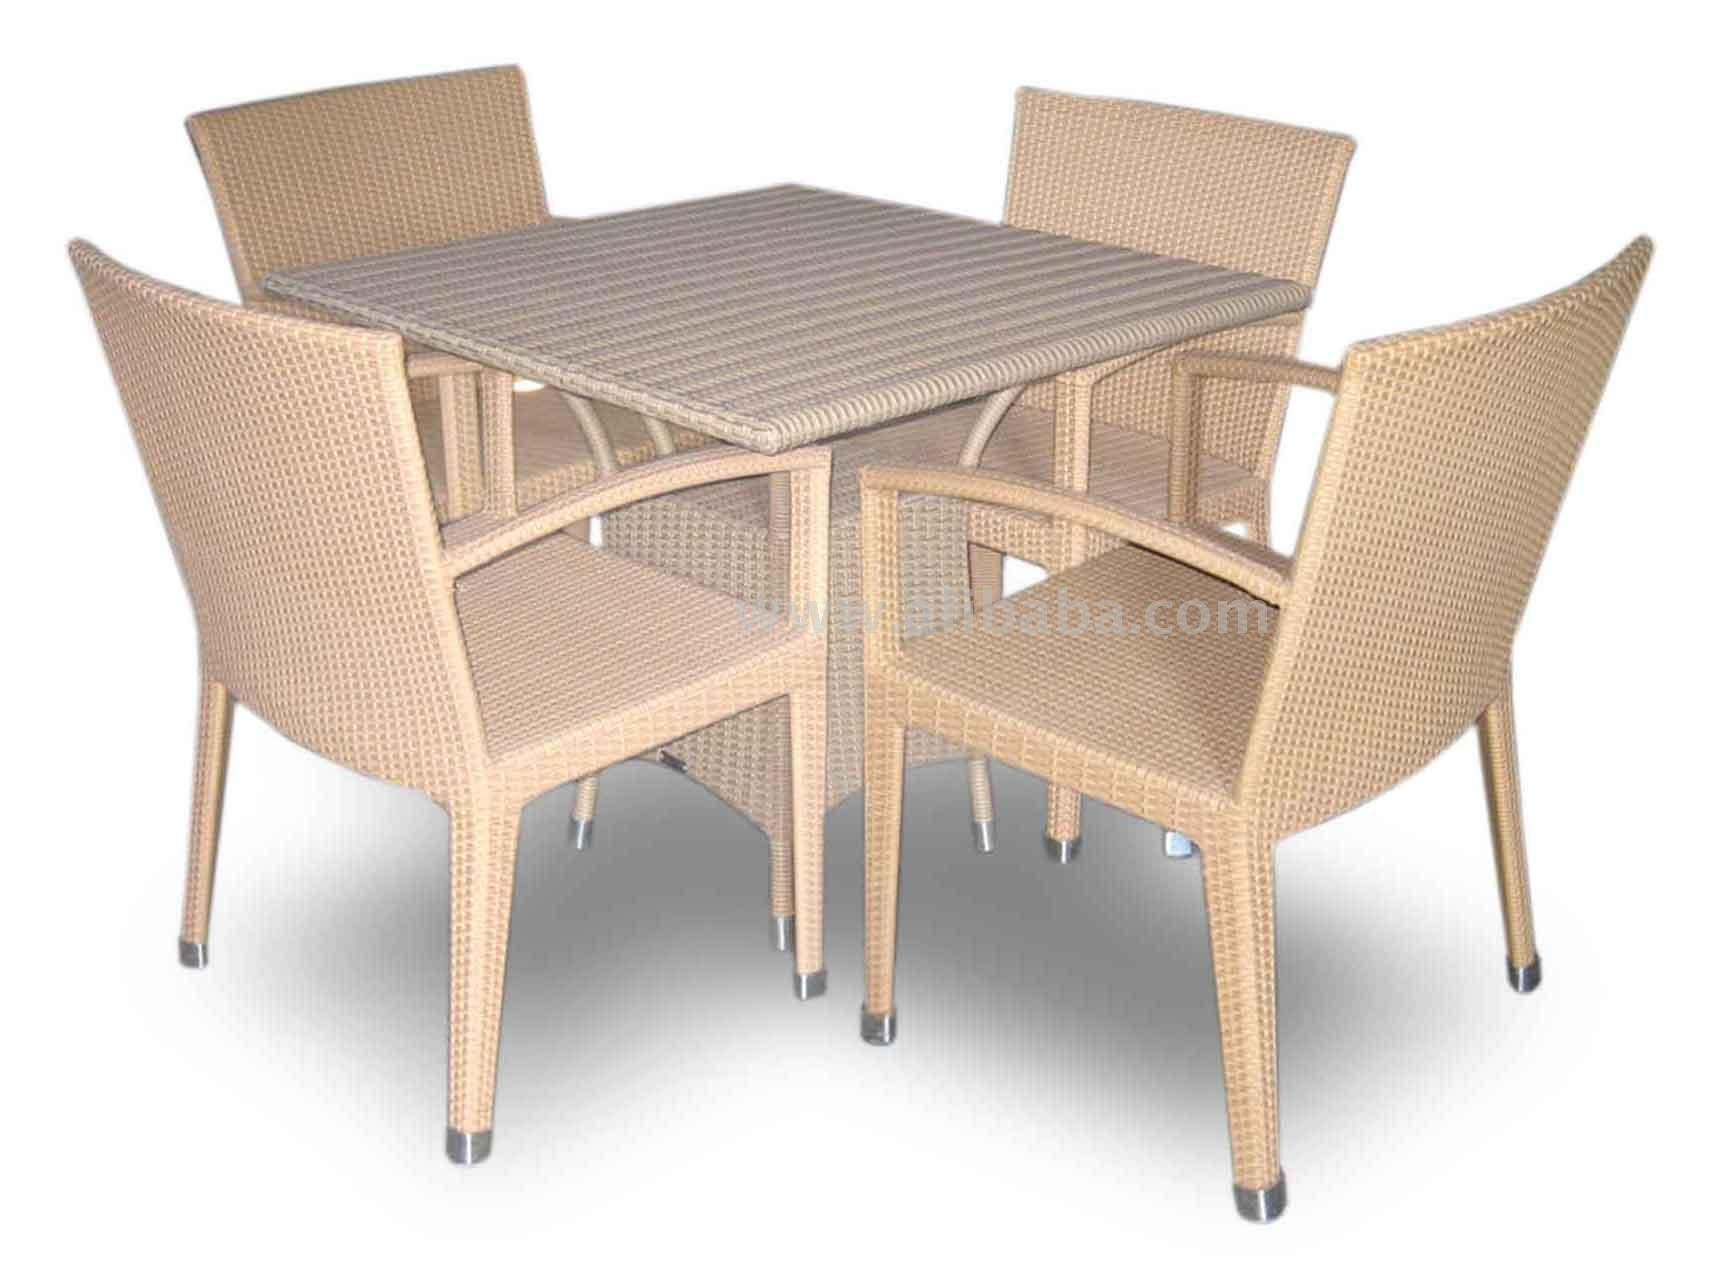 plastic furniture bg ssr 003 - buy plastic furniture product on alibaba.com PSCUJQX